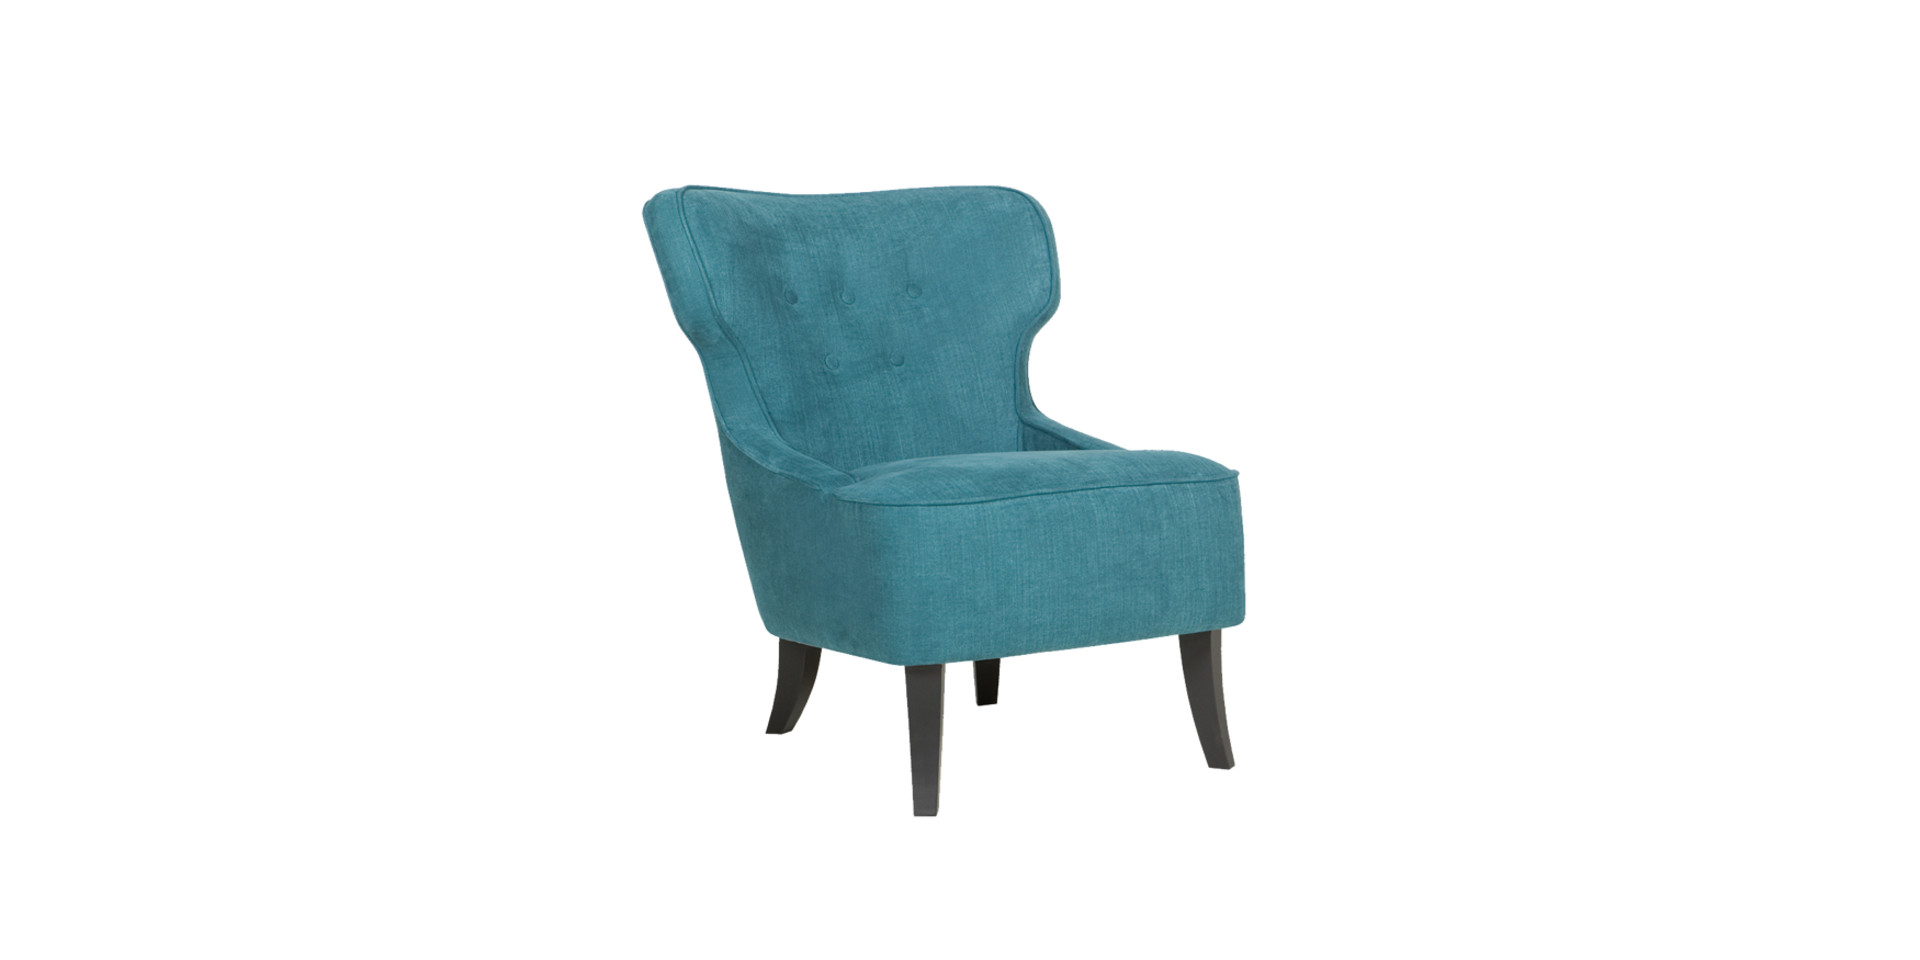 sits-lisa-fauteuil-armchair5_buttons_caleido1551_turquoise_2